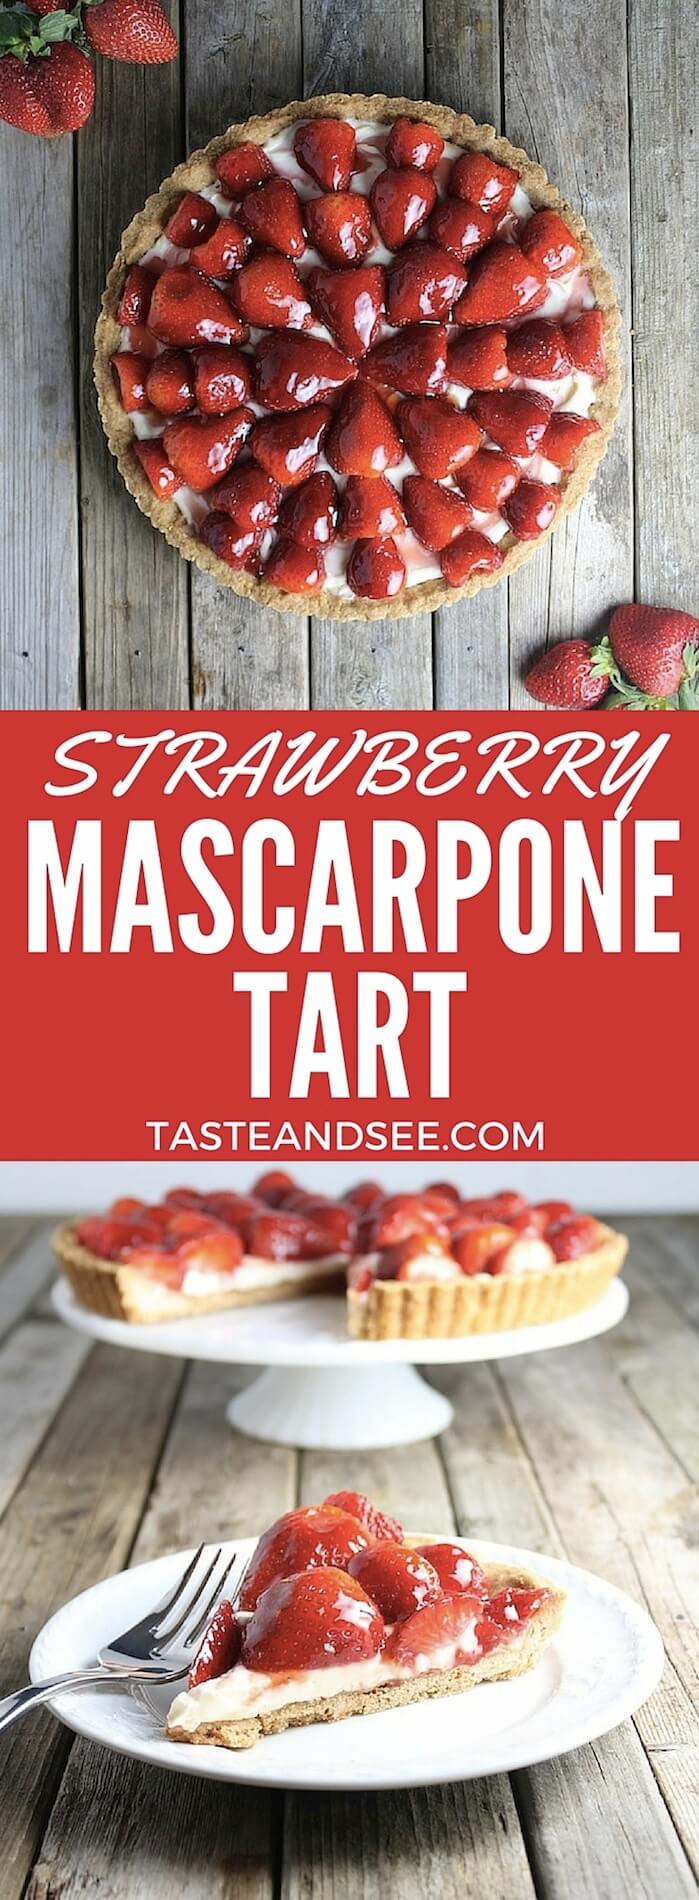 Beautiful & luscious Strawberry Mascarpone Tart. Shortbread crust w/velvety mascarpone cheese mixture, topped w/glazed strawberries. Creamy & berry sweet. http://tasteandsee.com